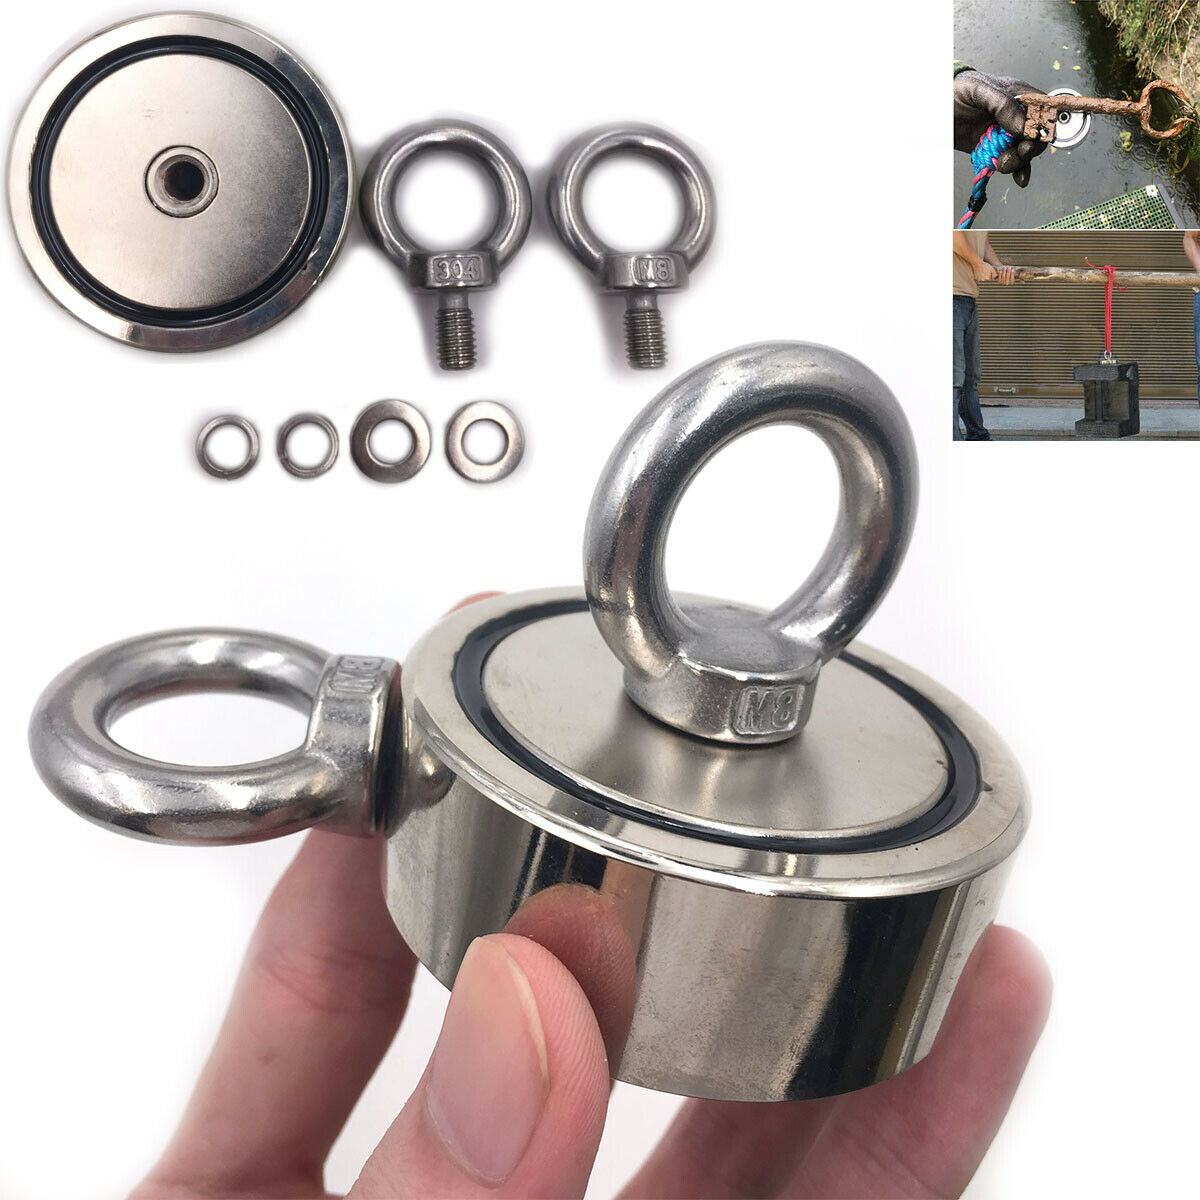 Hot Salvage Strong Recovery Magnet Neodymium Hook Treasure Hunting Fishing 200KG